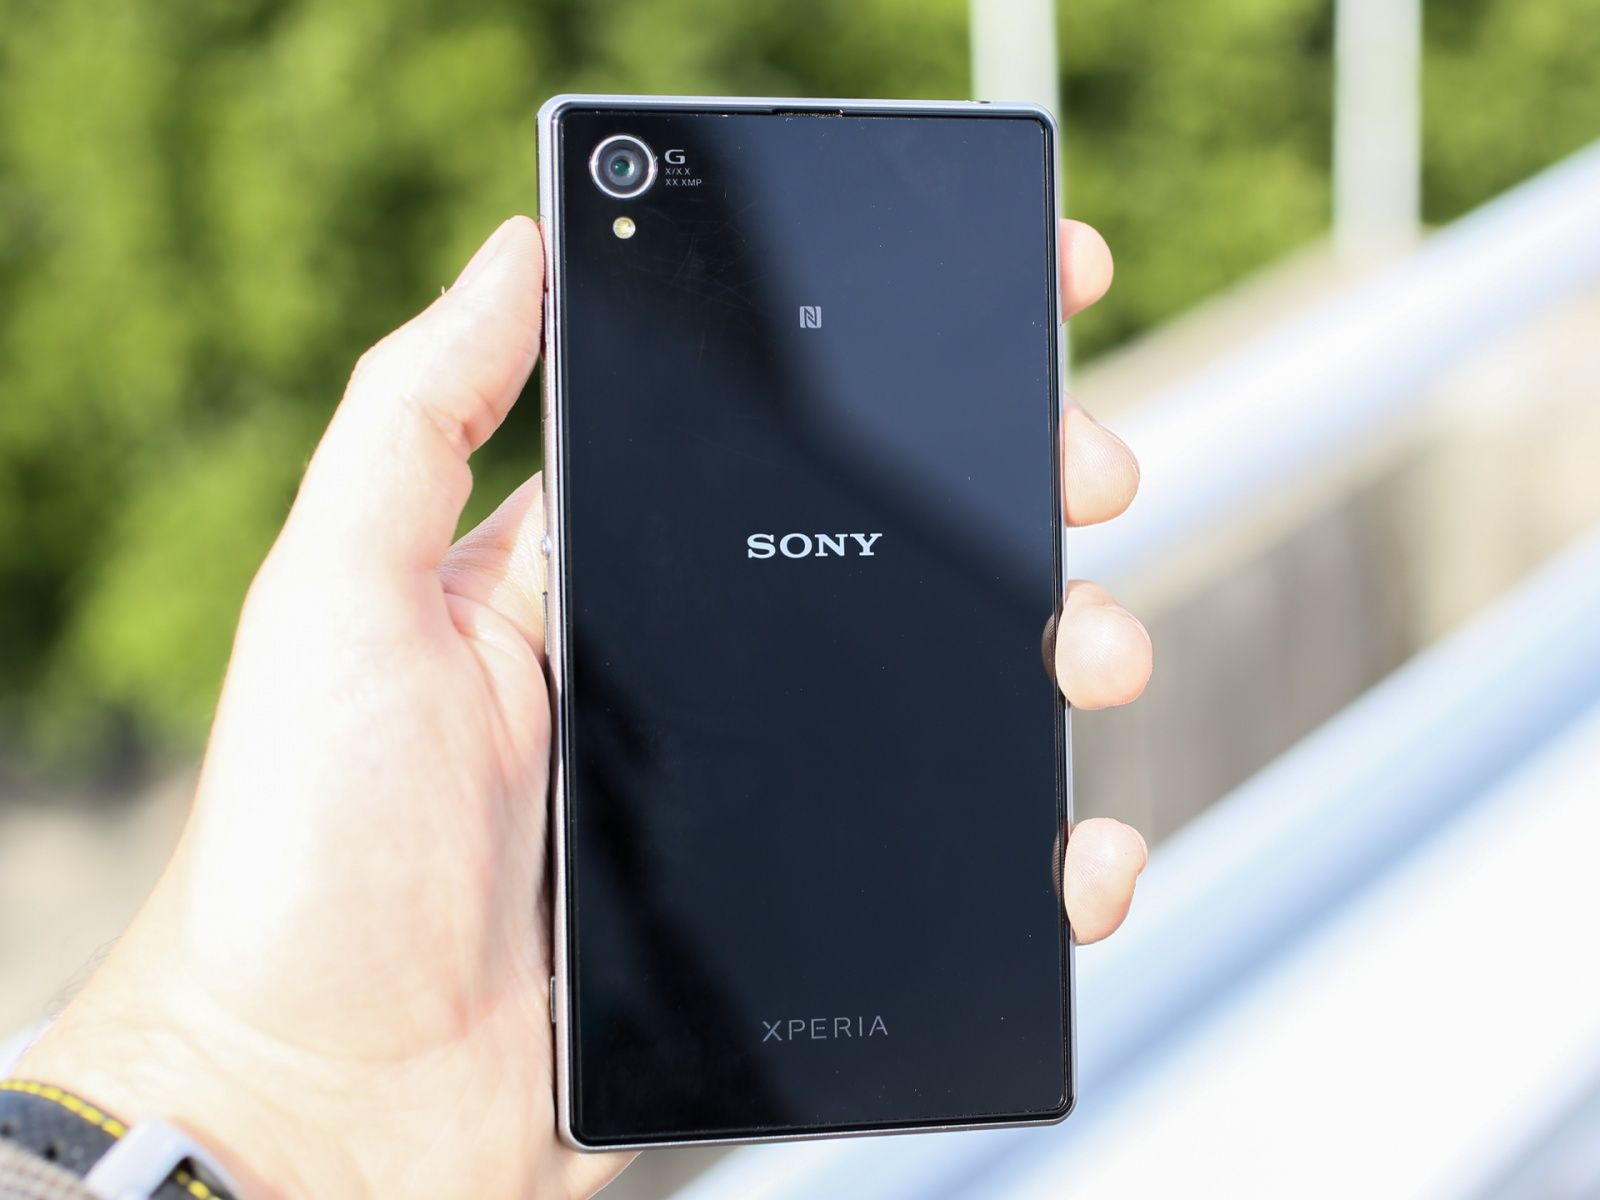 sony xperia z1 2 - Sony Xperia Z1 and Z Ultra Android 4.3 rollout begins, Smart Social Camera comes to the Z Ultra